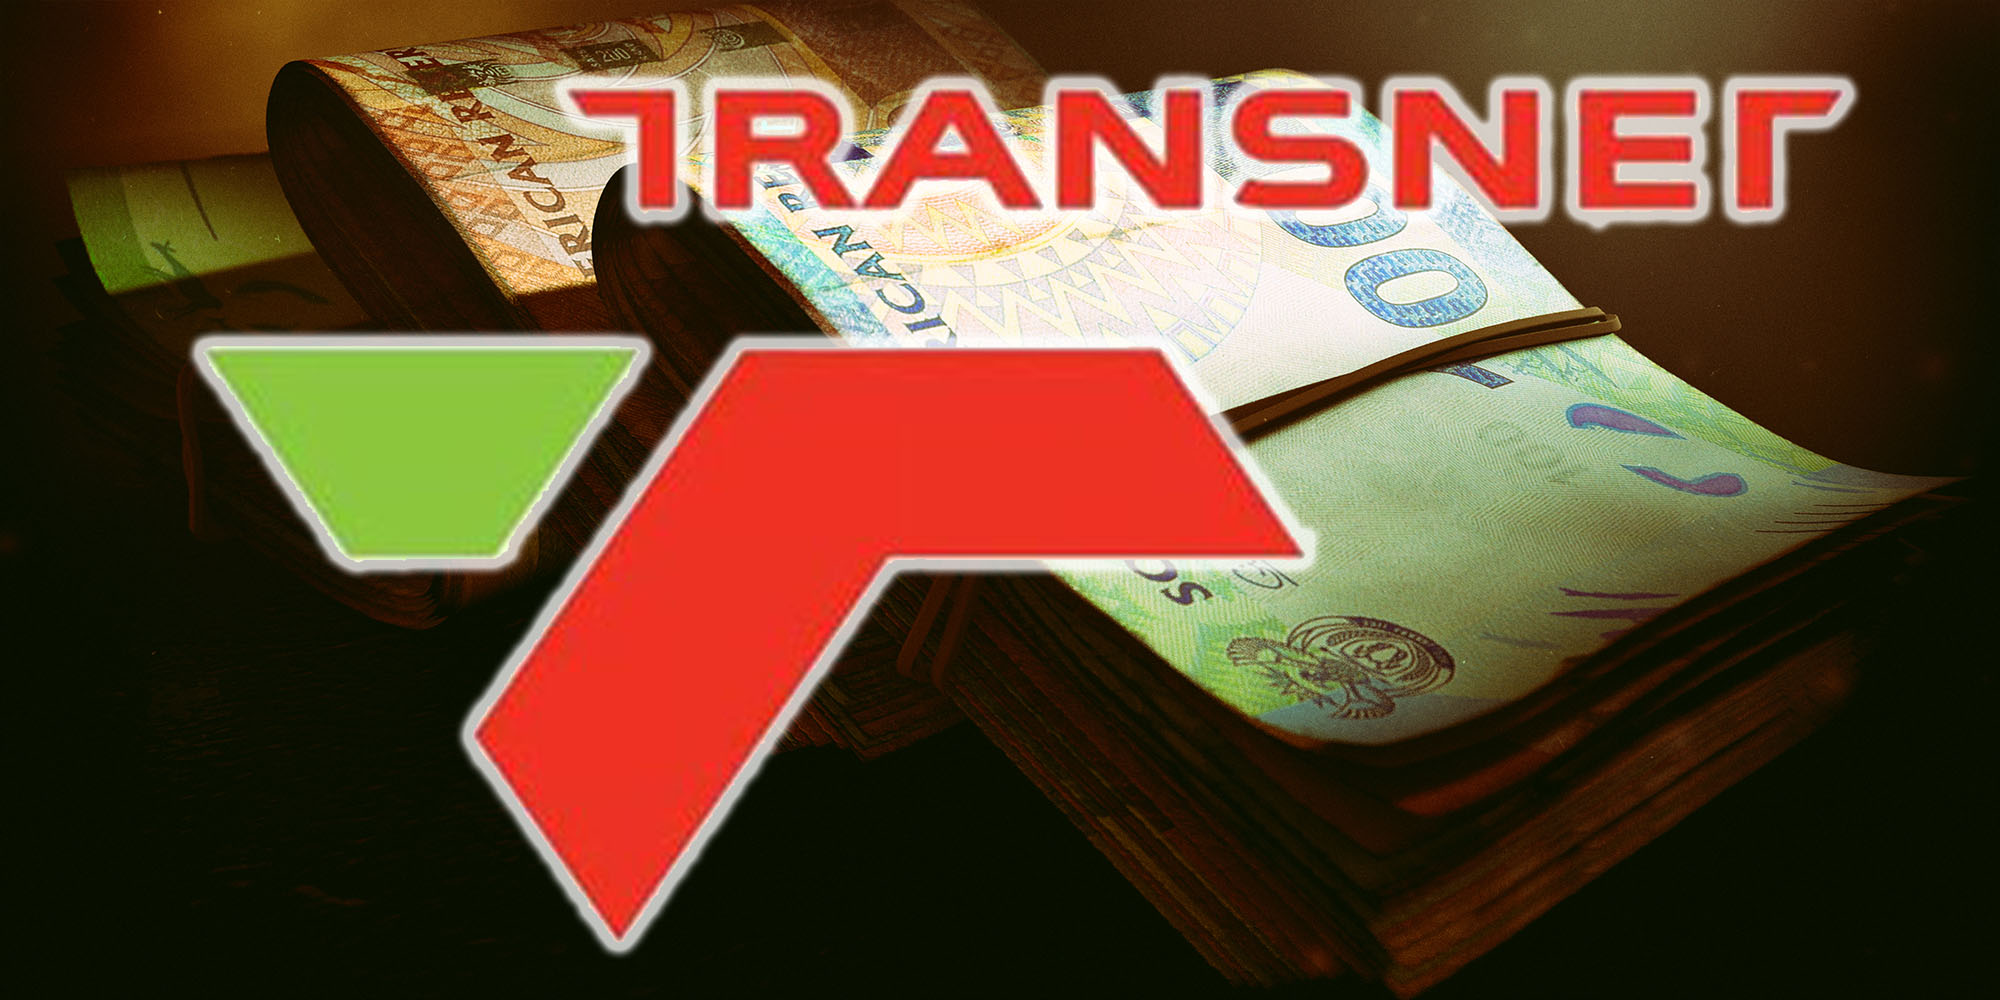 ec653424d6902b DAYS OF ZONDO  R1.4bn and counting  The extra cost of Transnet s  questionable interest rate swap deals